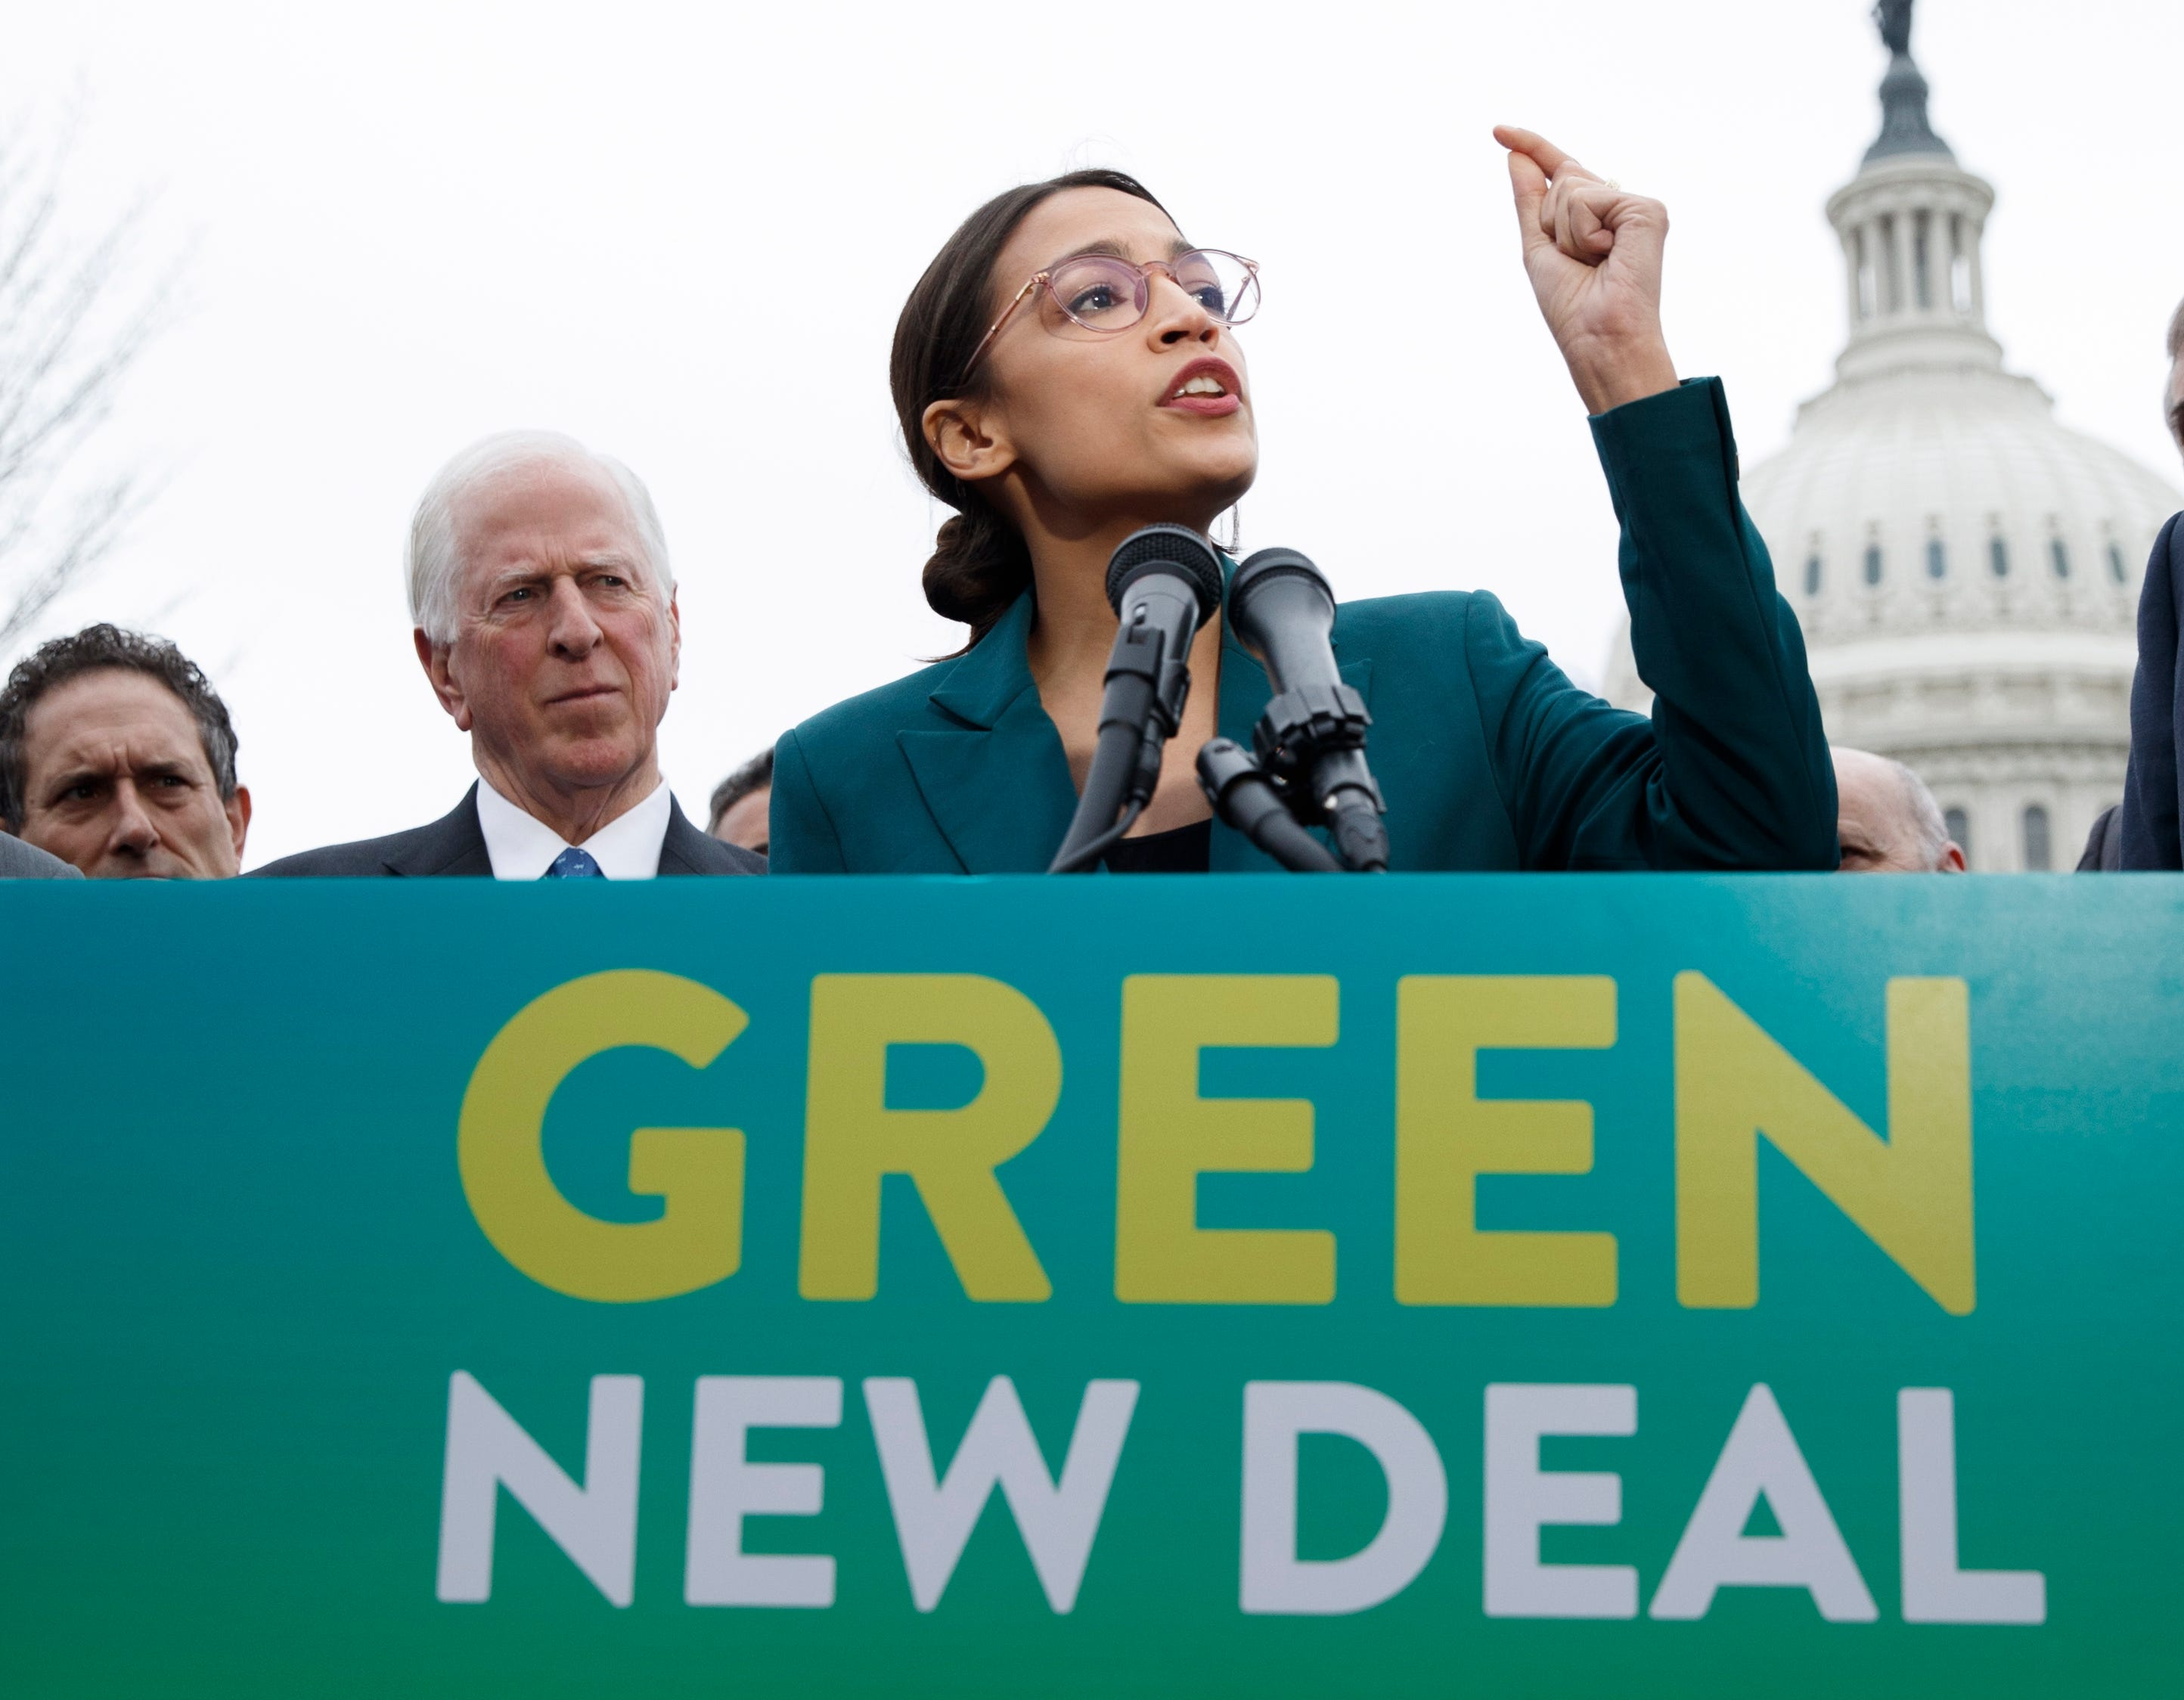 Rep. Alexandria Ocasio-Cortez, D-N.Y., with Sen. Ed Markey, D-Mass., delivers remarks on the Green New Deal resolution during a news conference Feb. 7, 2019, on Capitol Hill.